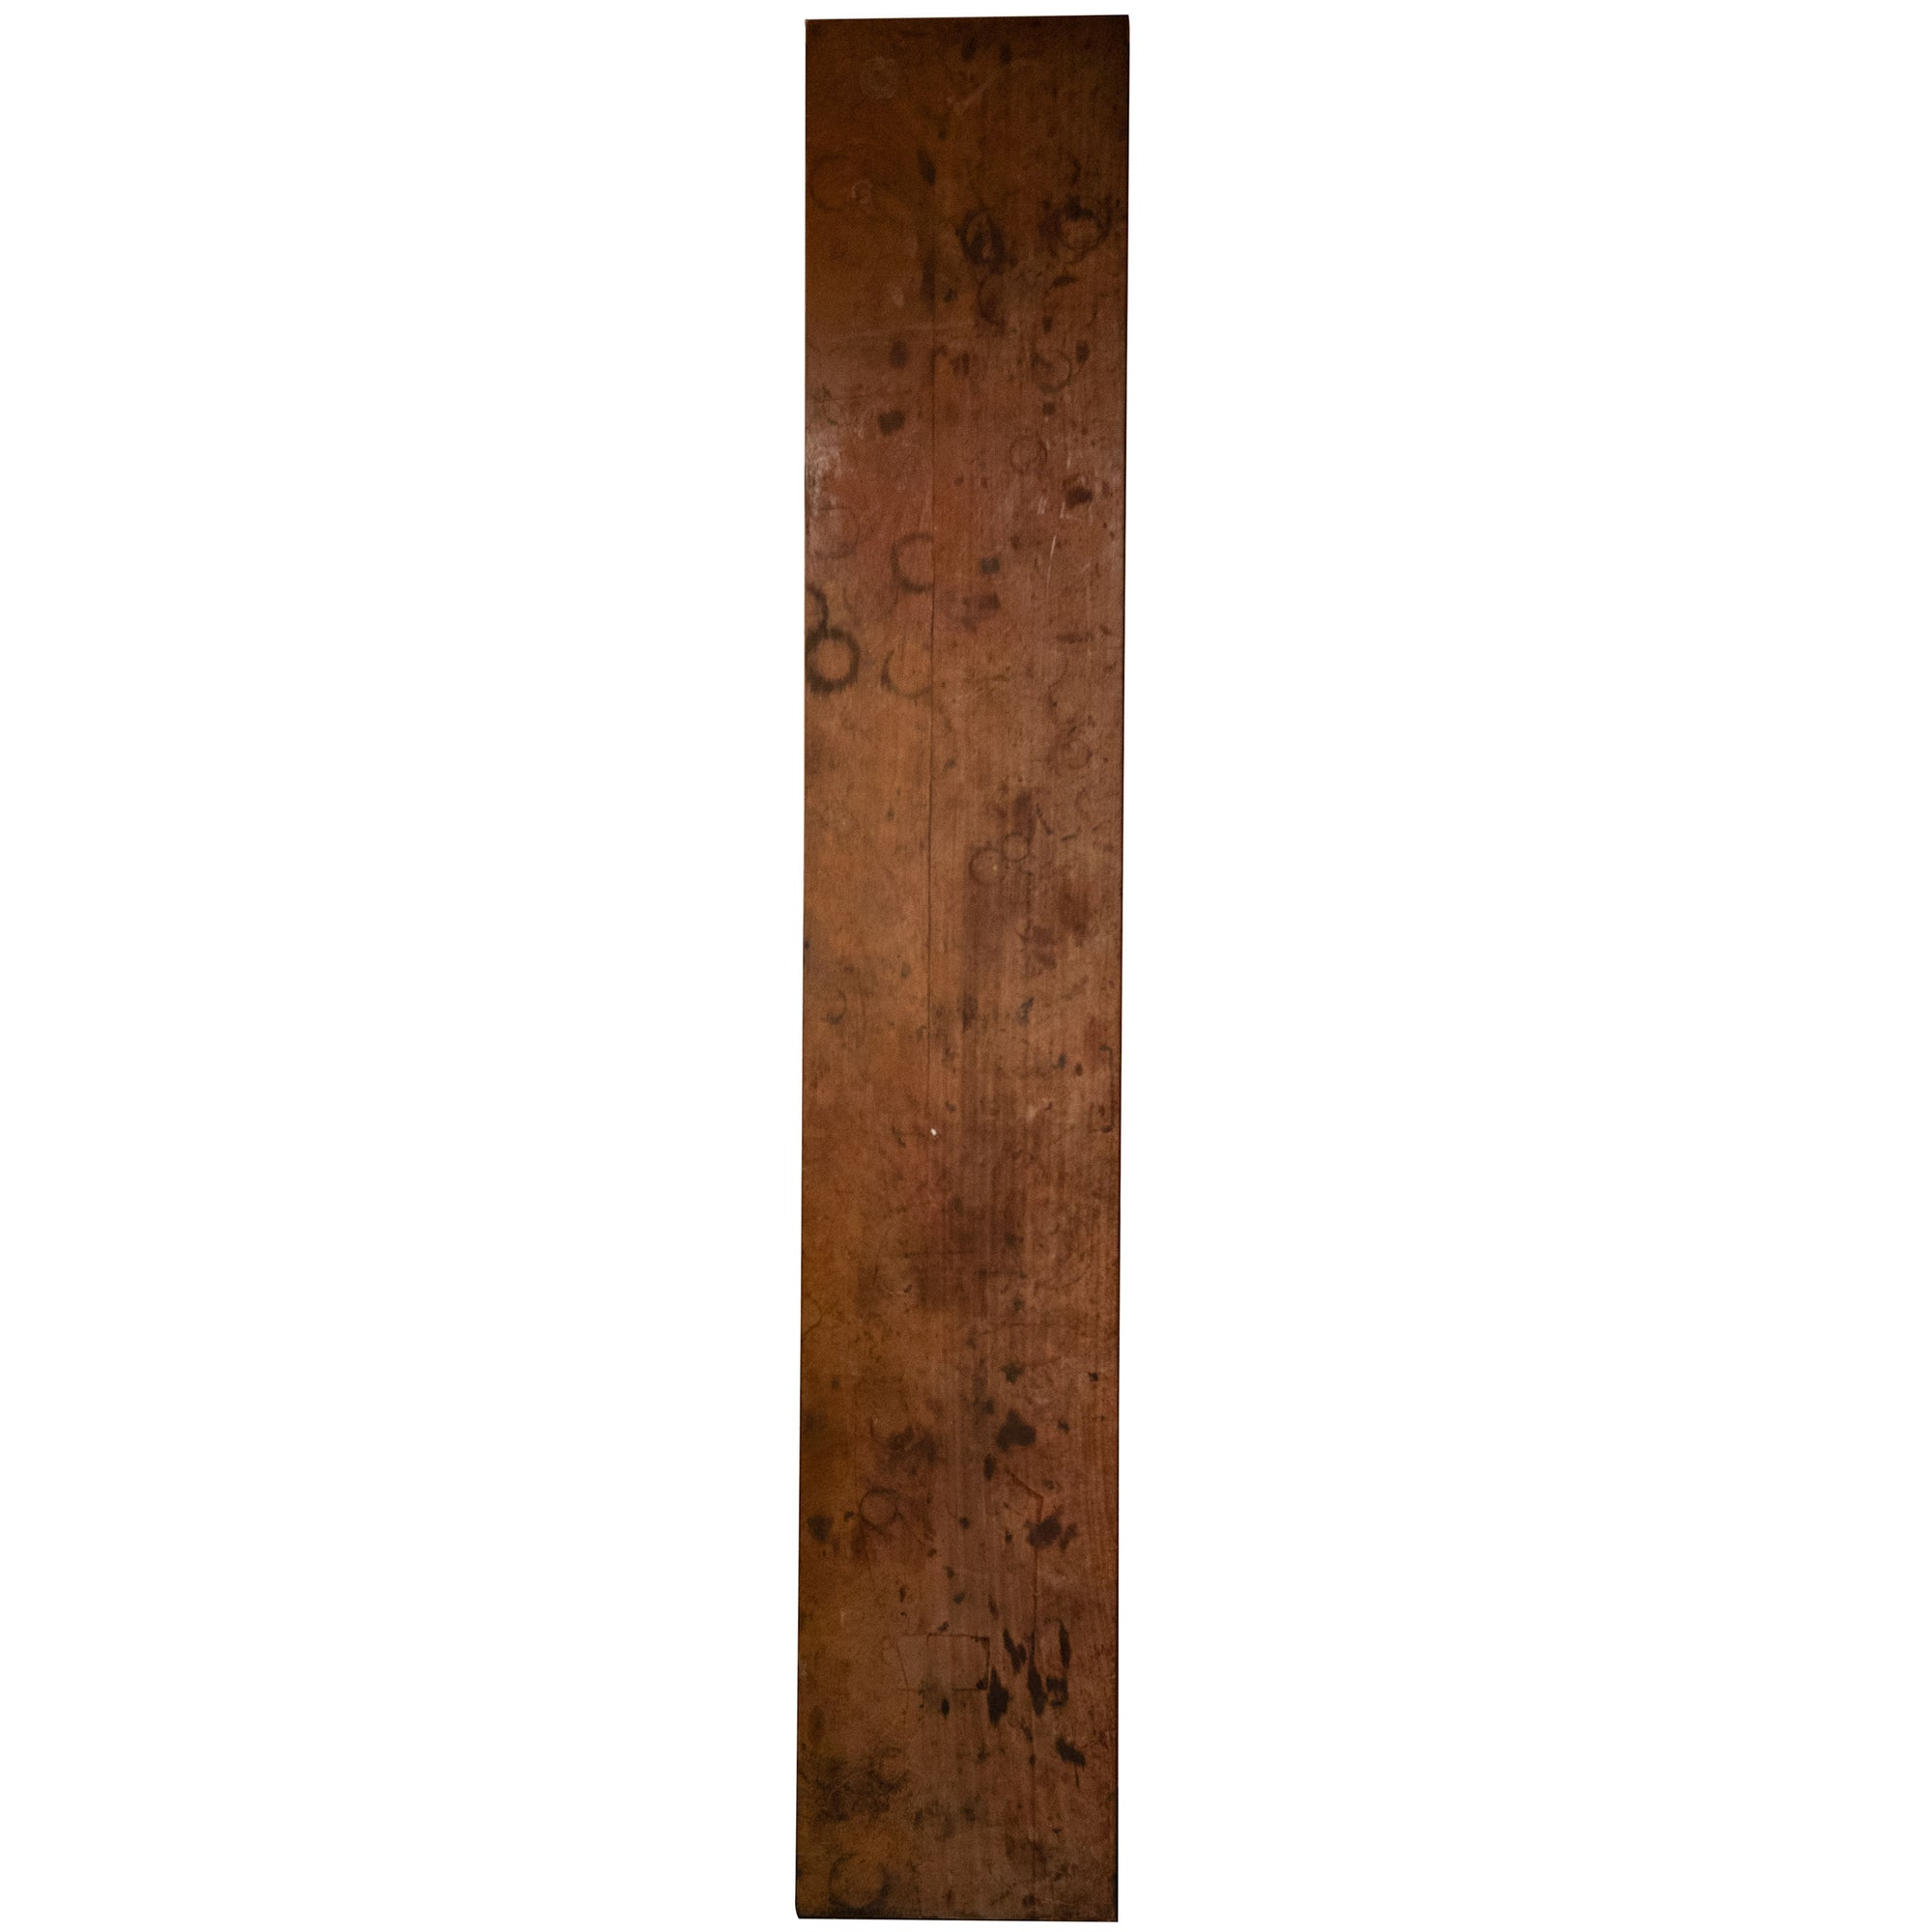 Reclaimed Teak / Iroko Worktop 356 X 60cm - architectural-forum